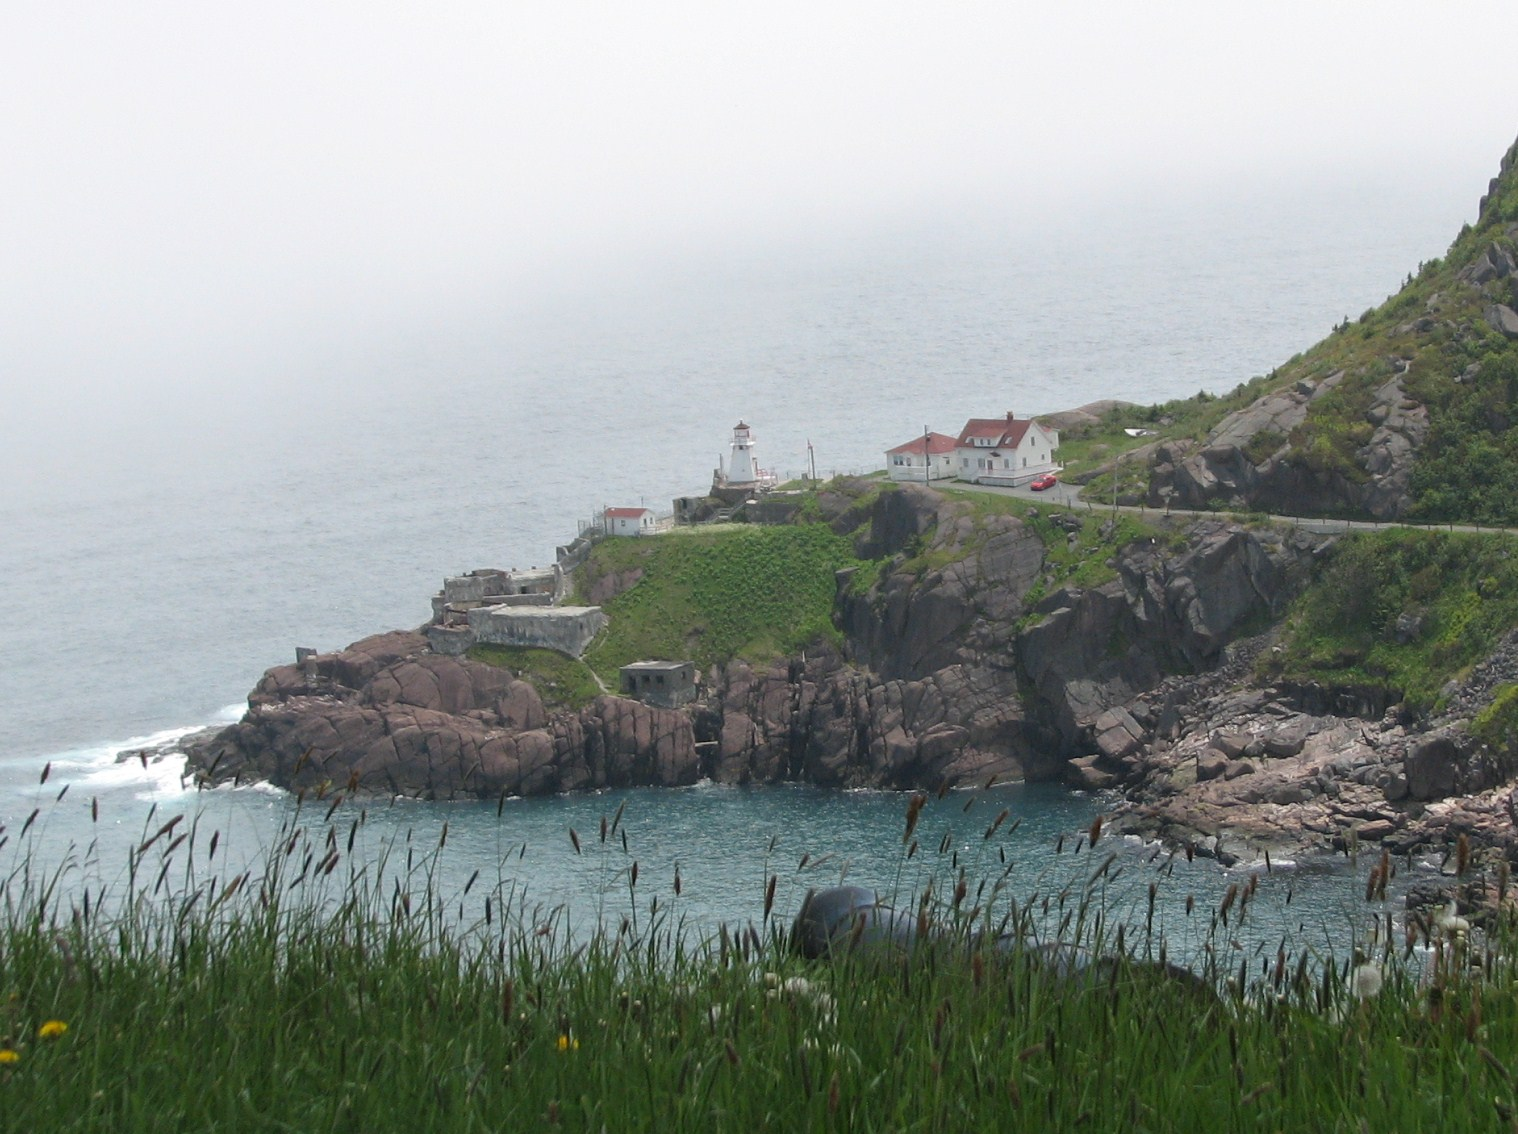 the controversial debate about newfoundland joining canada in 1949 National parliaments: canada  created the dominion of canada by joining three british colonies  and newfoundland according to historica canada, [a]fter.